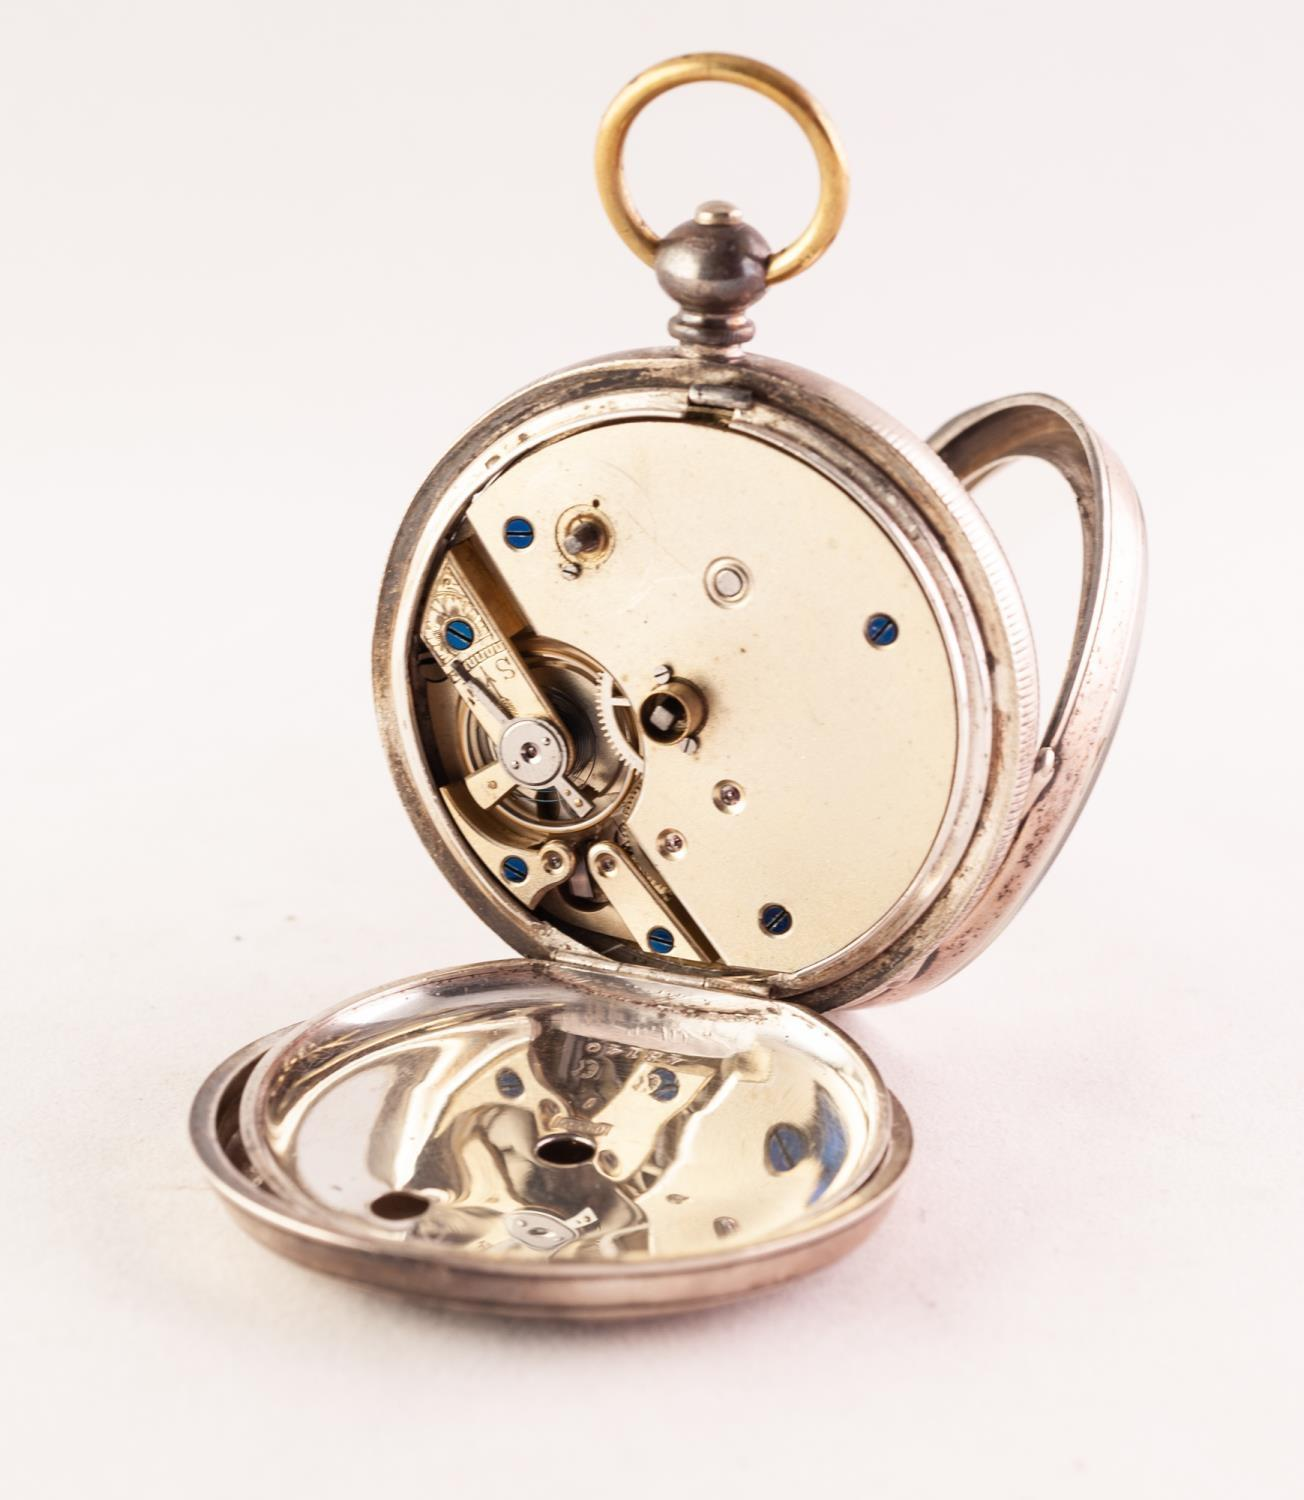 Lot 55 - A SILVER OPEN FACE POCKET WATCH The circular white enamel dial with Roman numeral hour markers,